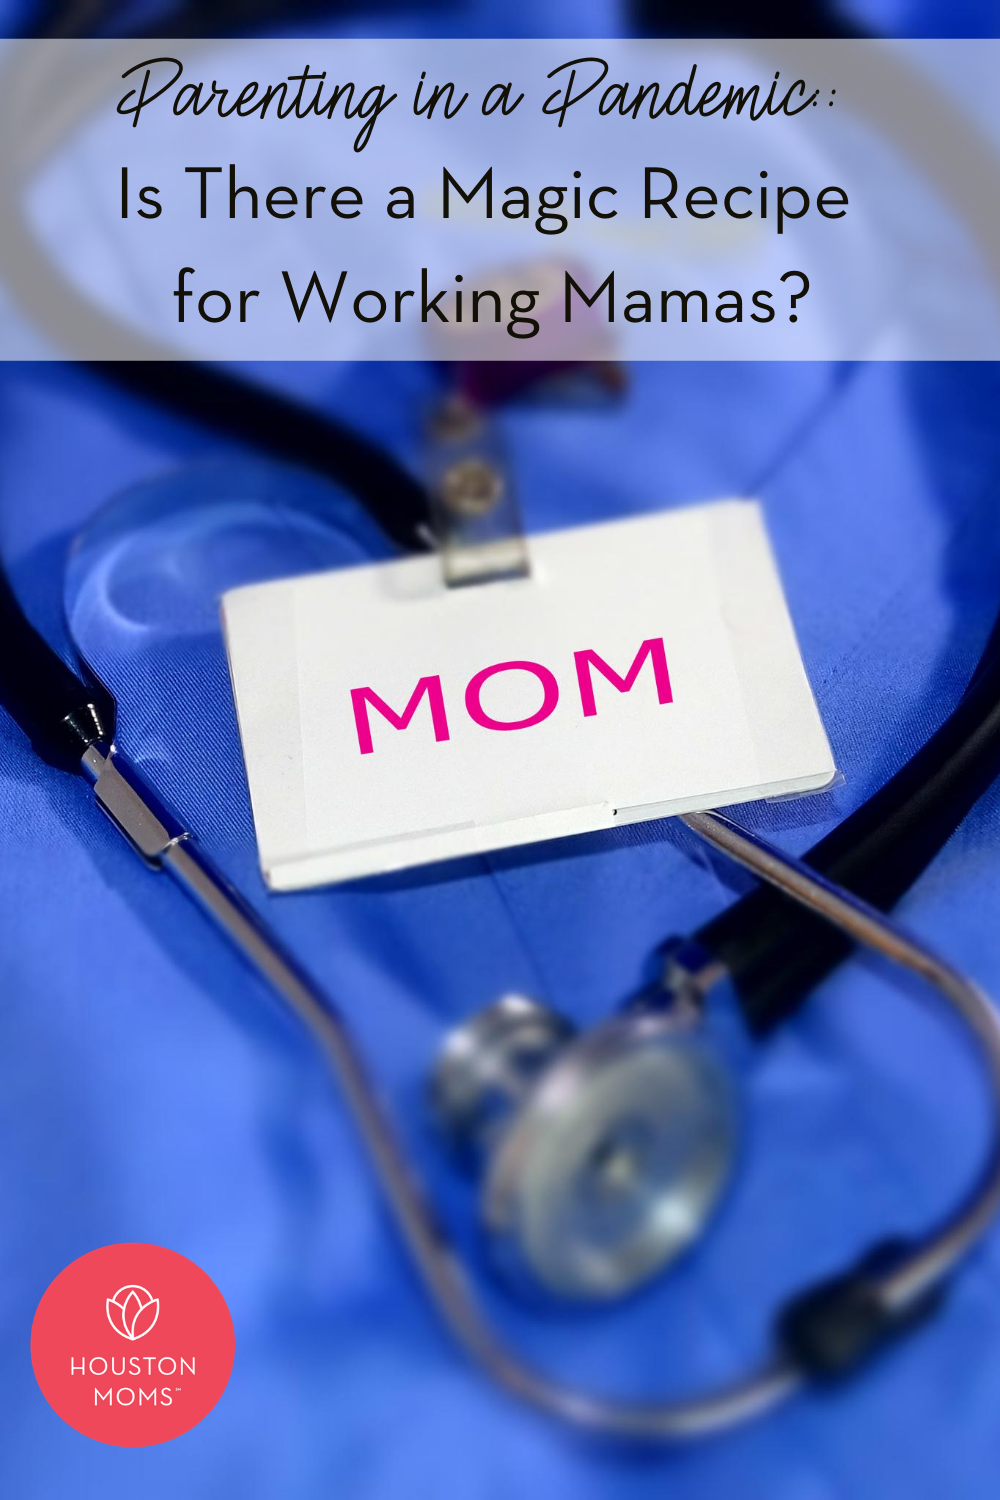 """Houston Moms """"Parenting in a Pandemic:: Is There a Magic Recipe for Working Mamas?"""" #houstonmoms #houstonmomsblog #momsaroundhouston"""